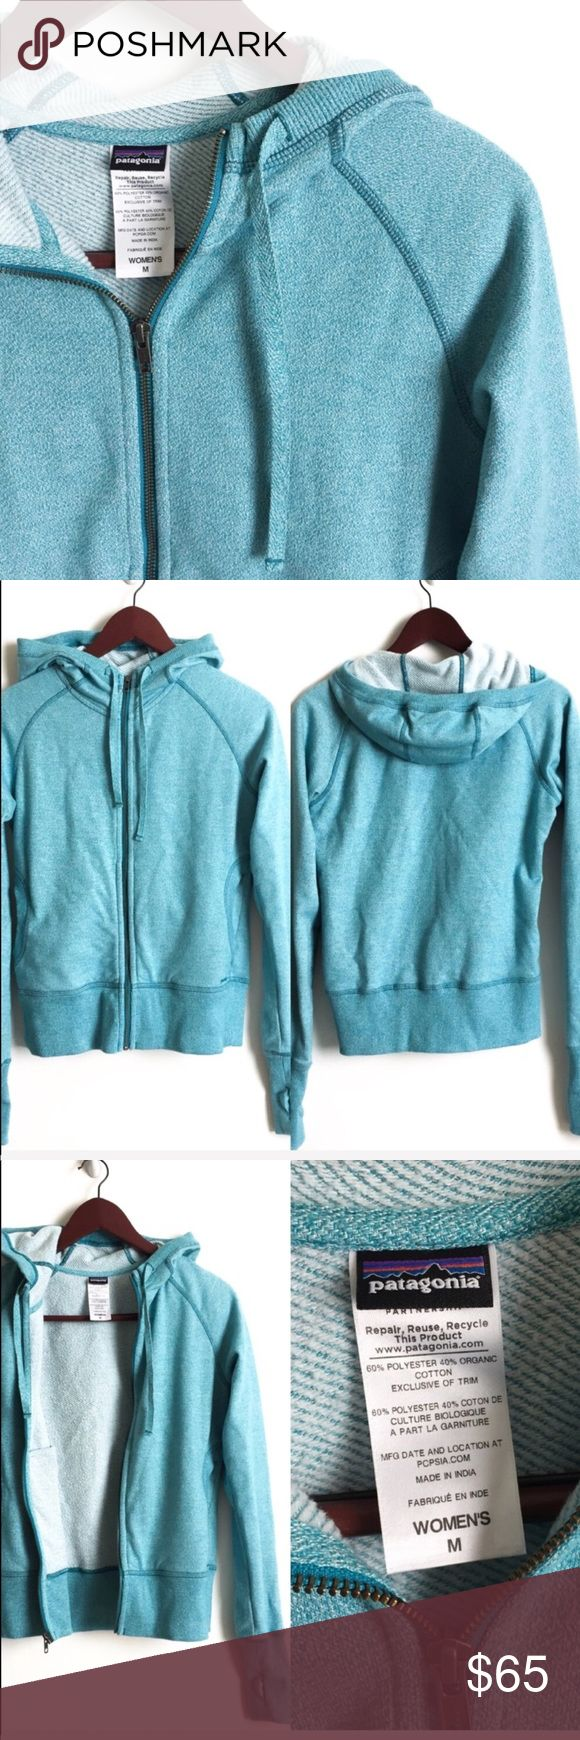 Patagonia Sweater Jacket ▫️Patagonia Hoodie Jacket ▫️Color: Blue (slightly different in pictures due to camera quality and lighting) ▫️Material: Organic Cotton, Polyester  ▫️True to Size ▫️Excellent Preowned Condition 🚫No Trades🚫 Patagonia Jackets & Coats